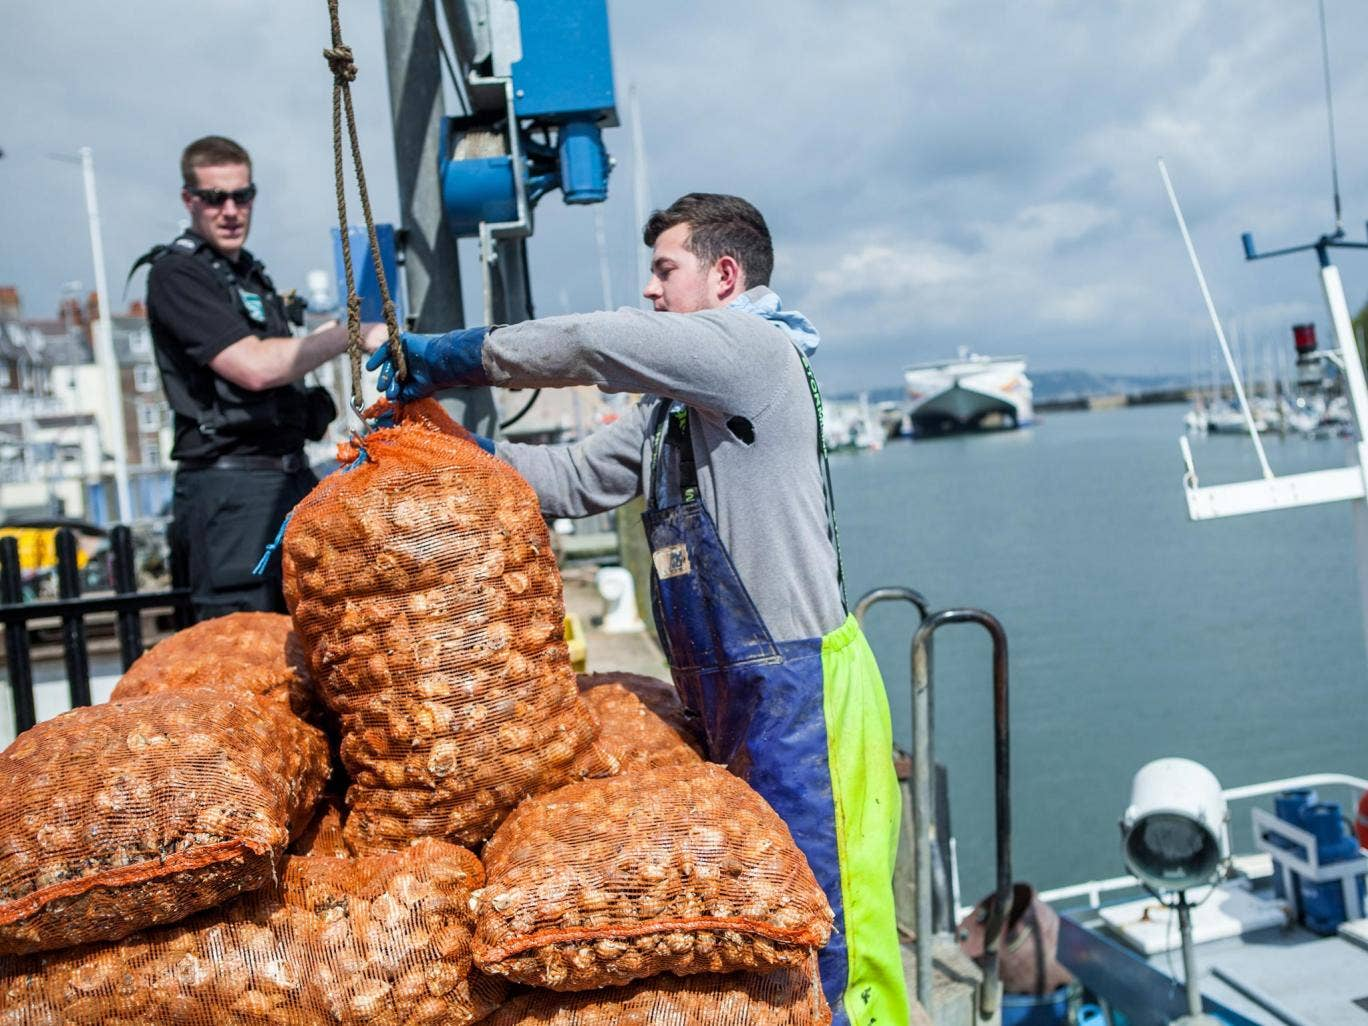 Whelk-come back: hauling whelks in Weymouth Harbour